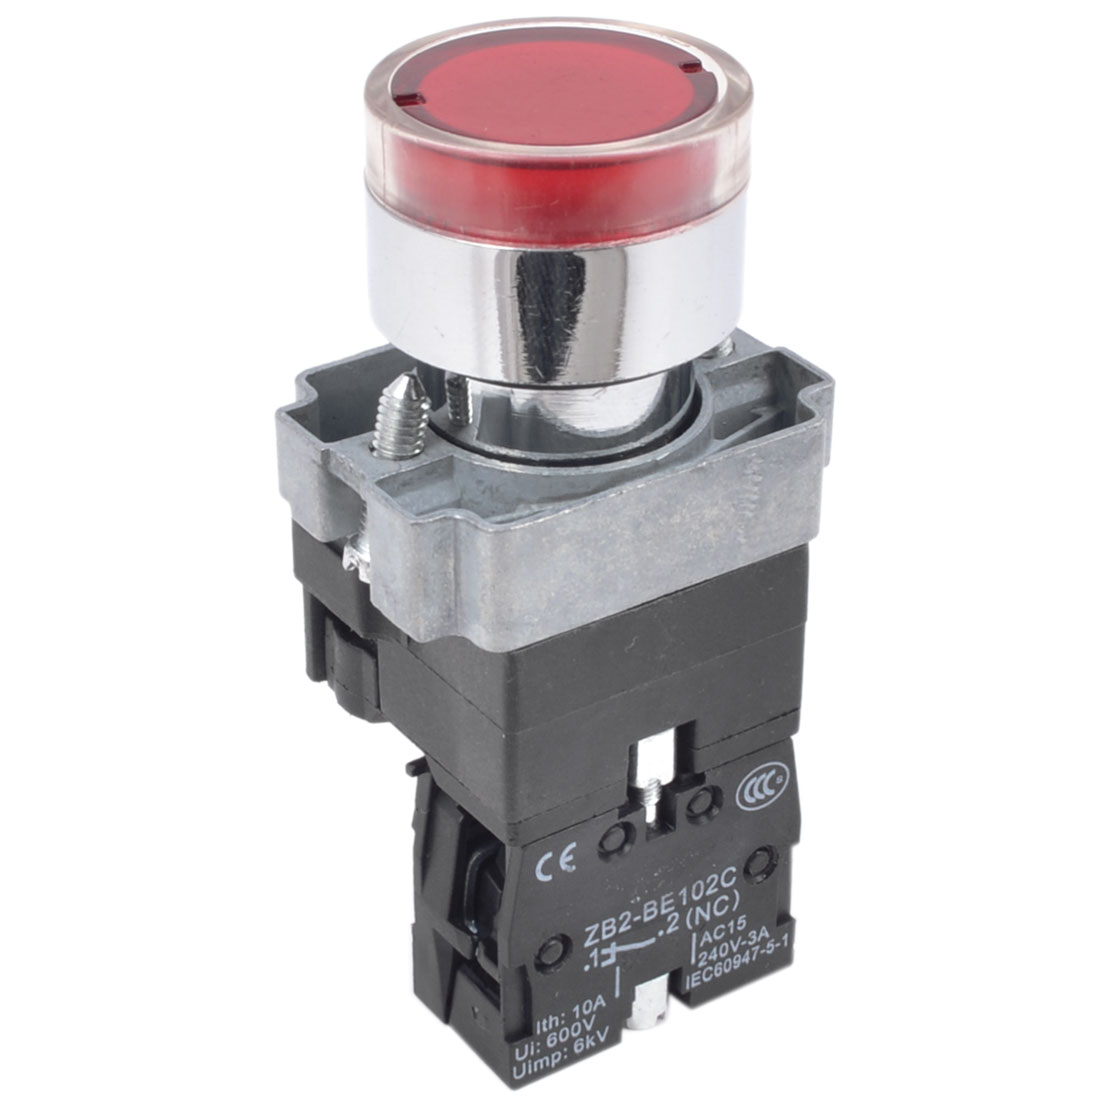 AC 220V 10A 4 Terminals 1NC SPST Momentary Red Light Push Button Switch